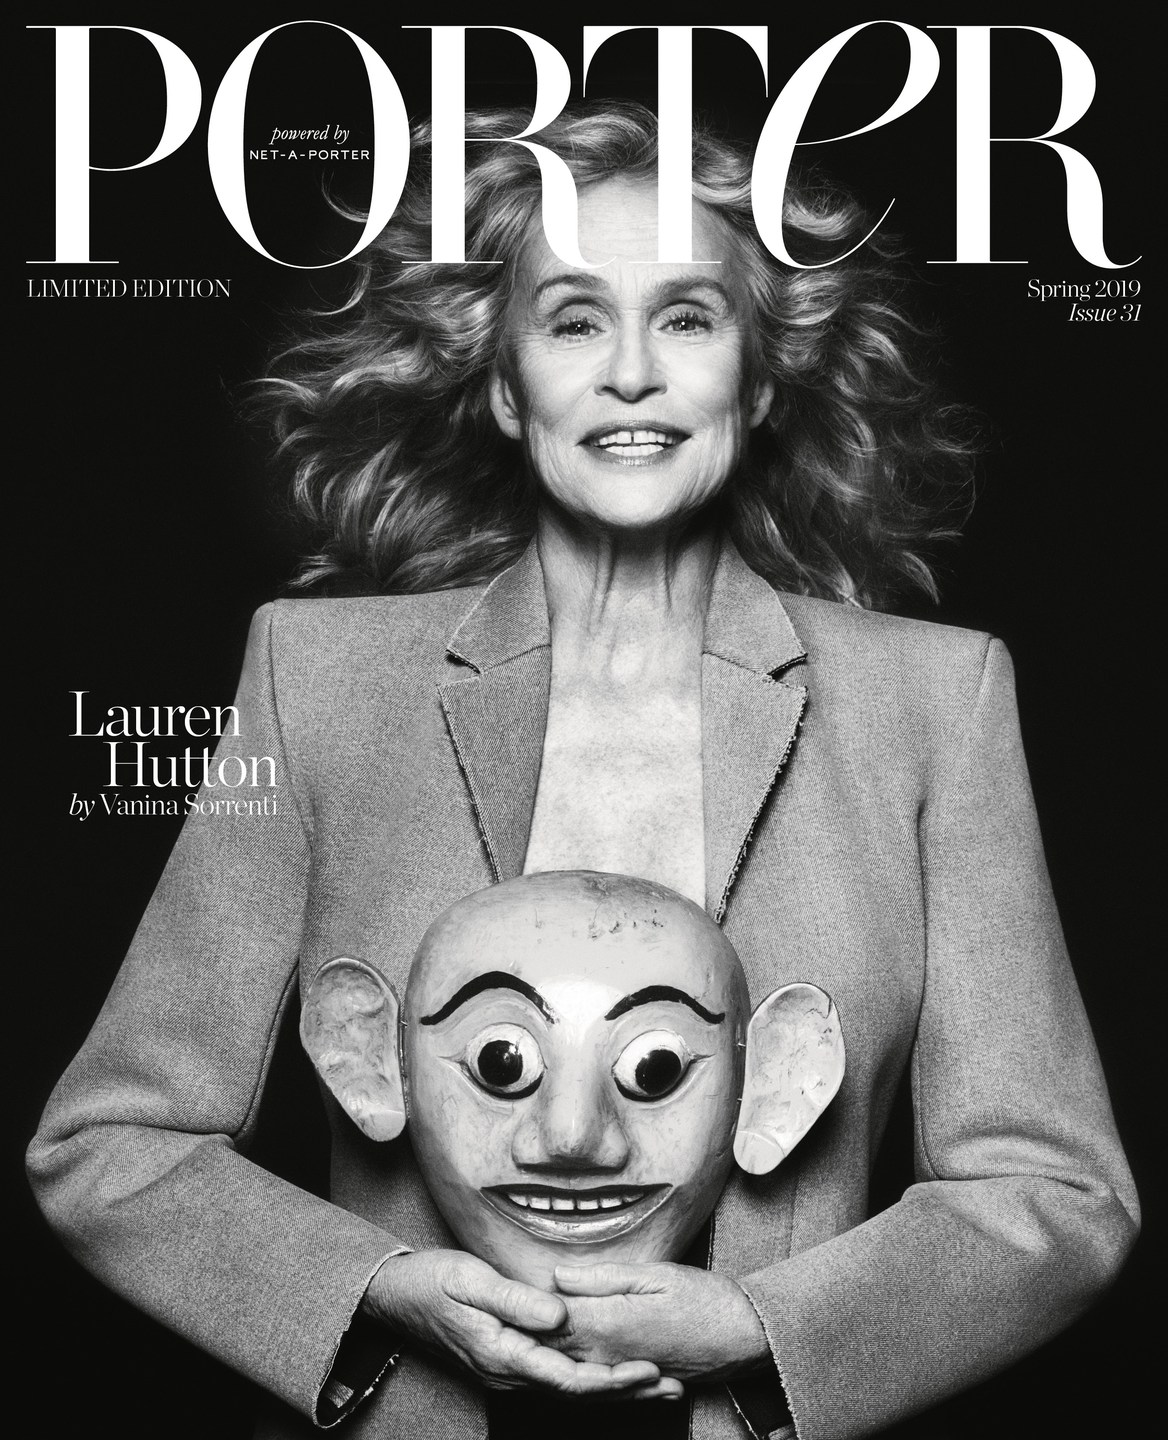 Lauren Hutton by Vanina Sorrenti for Porter Mag 31 (11).jpg